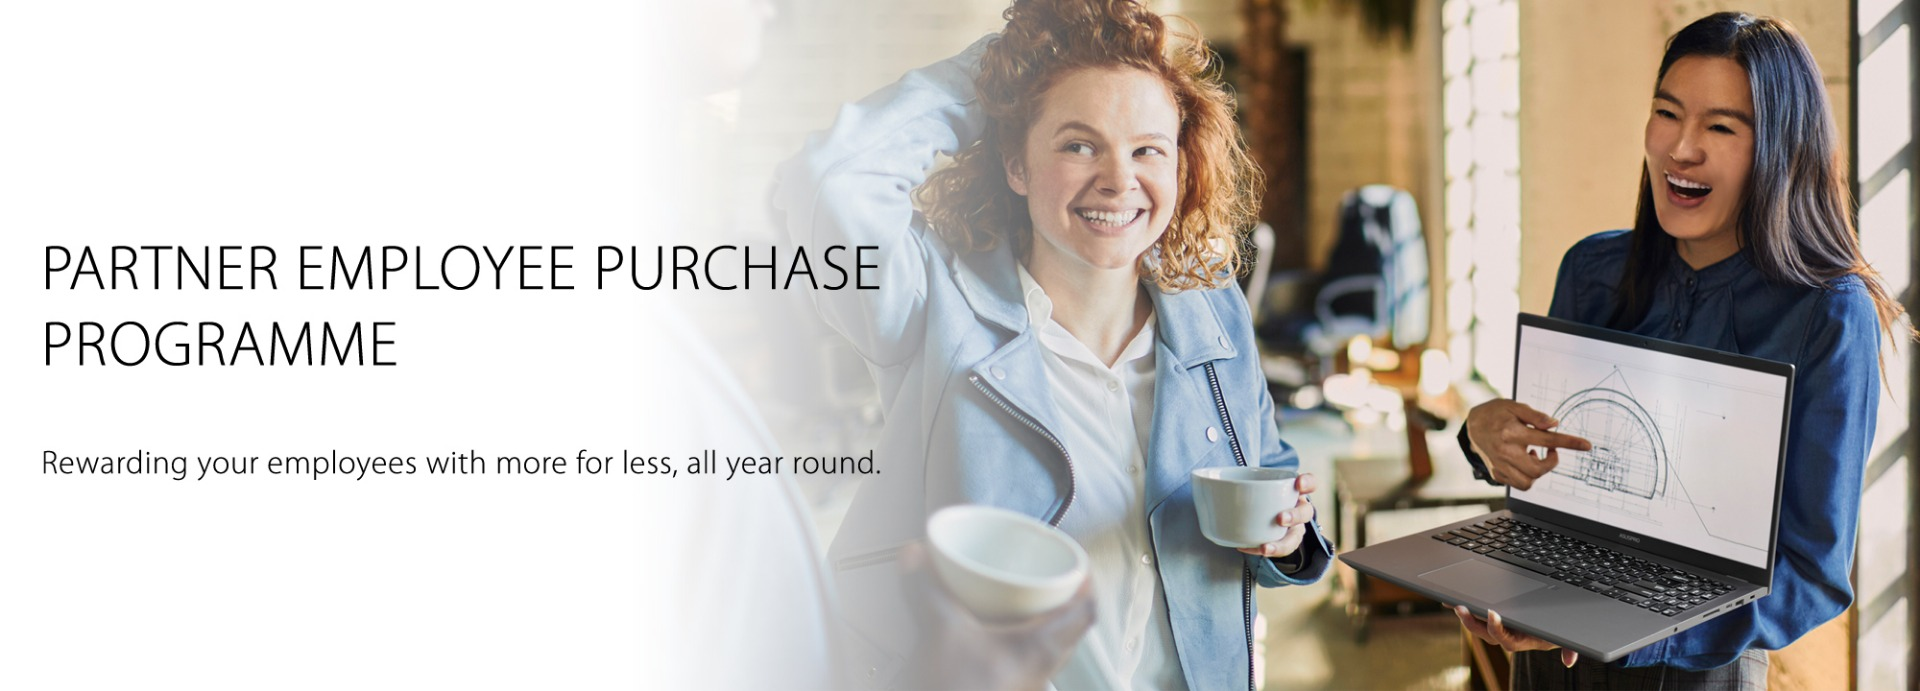 ASUS Partner Employee Purchase Programme - Rewarding your employees with more for less, all year round.